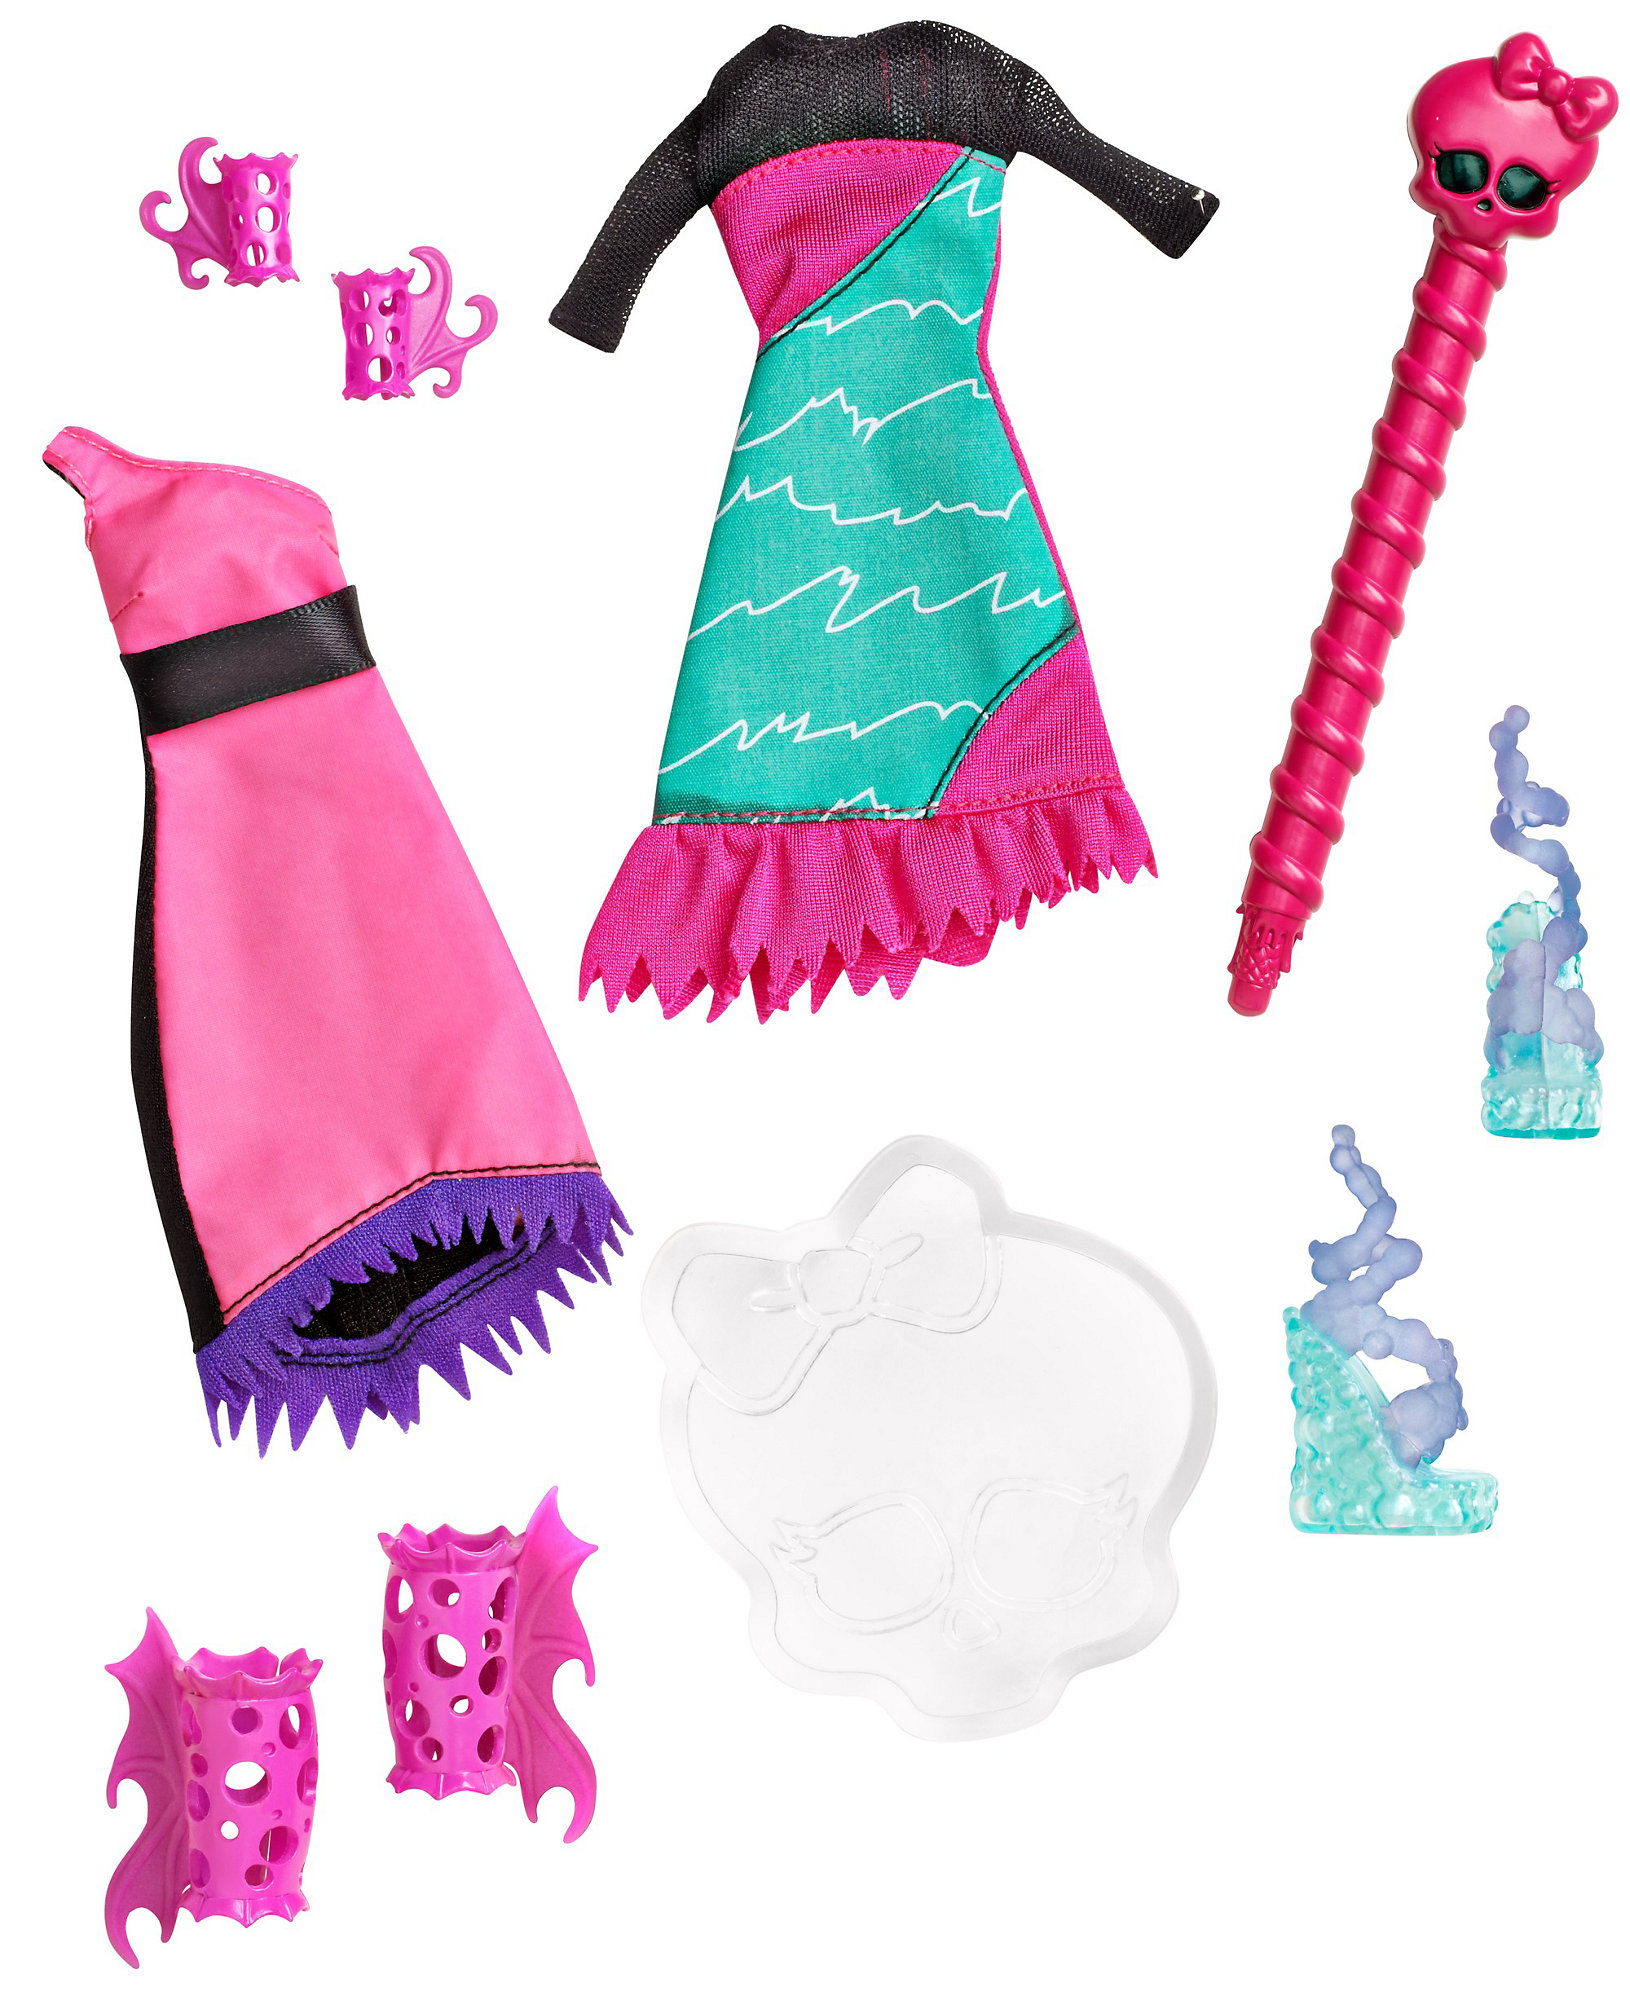 Monster High Create A Monster Color Me Creepy Sea Monster Add On Pack by Mattel